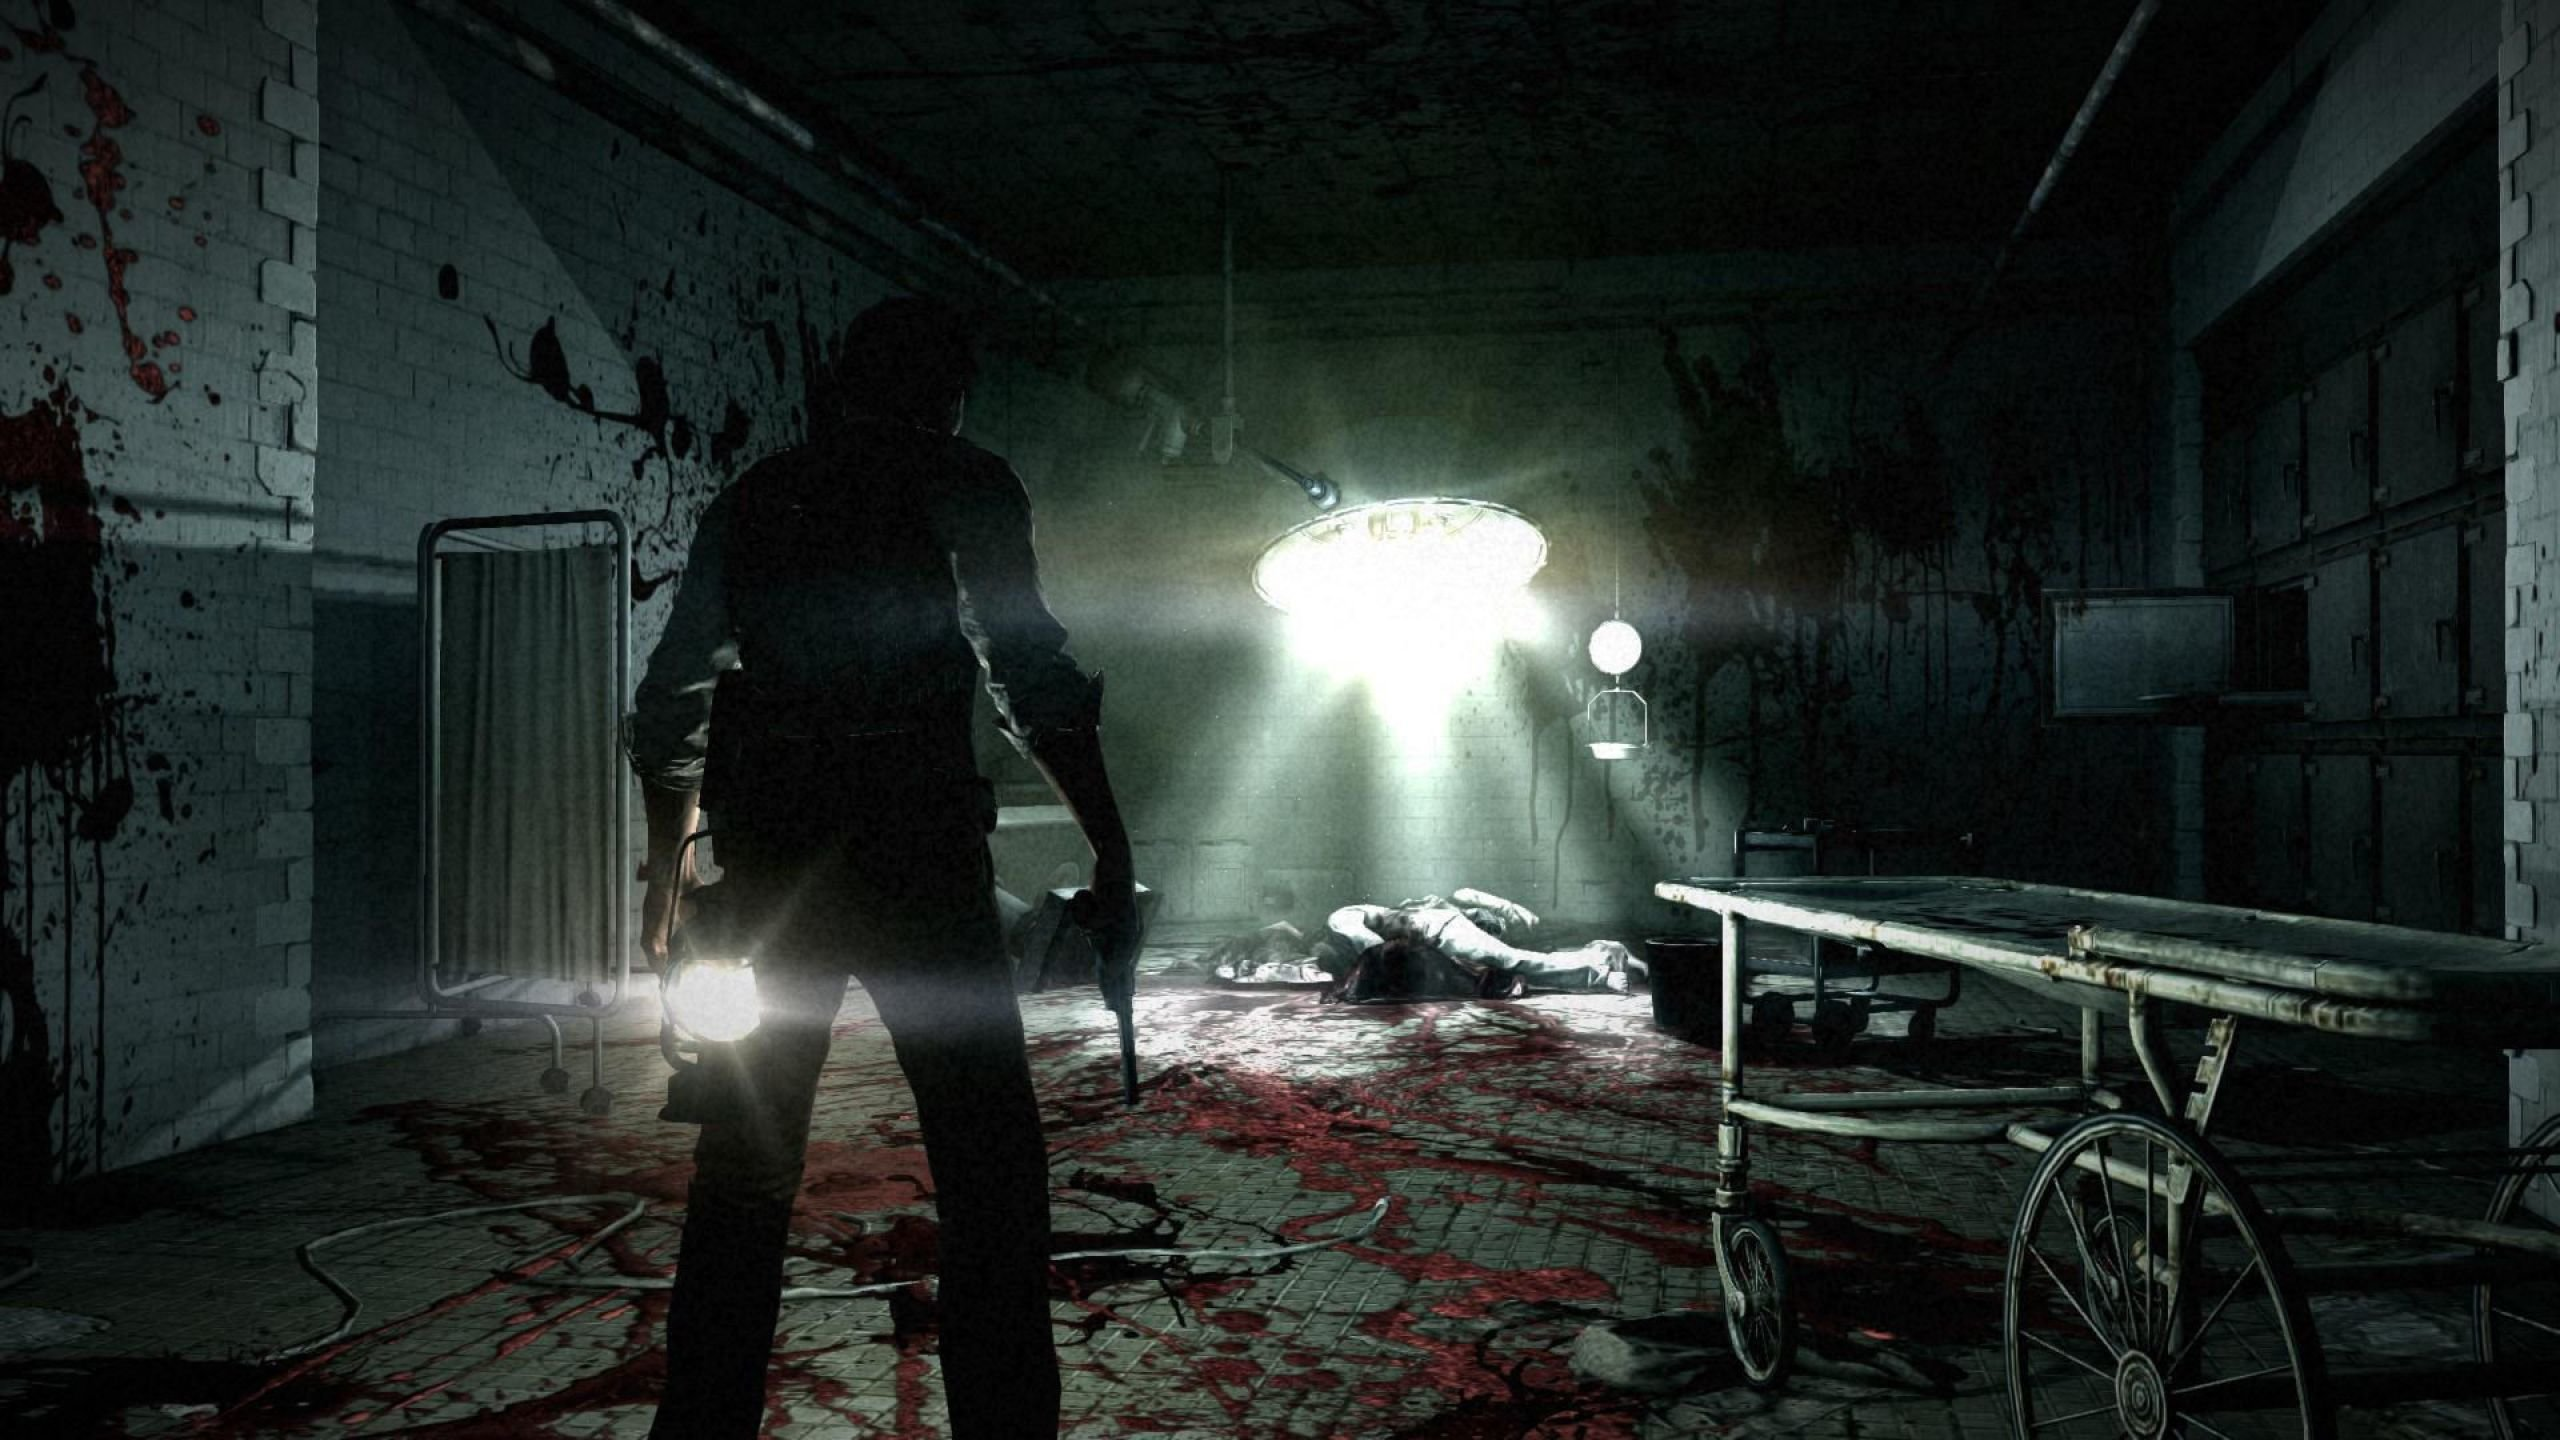 best the evil within wallpaper id:318978 for high resolution hd